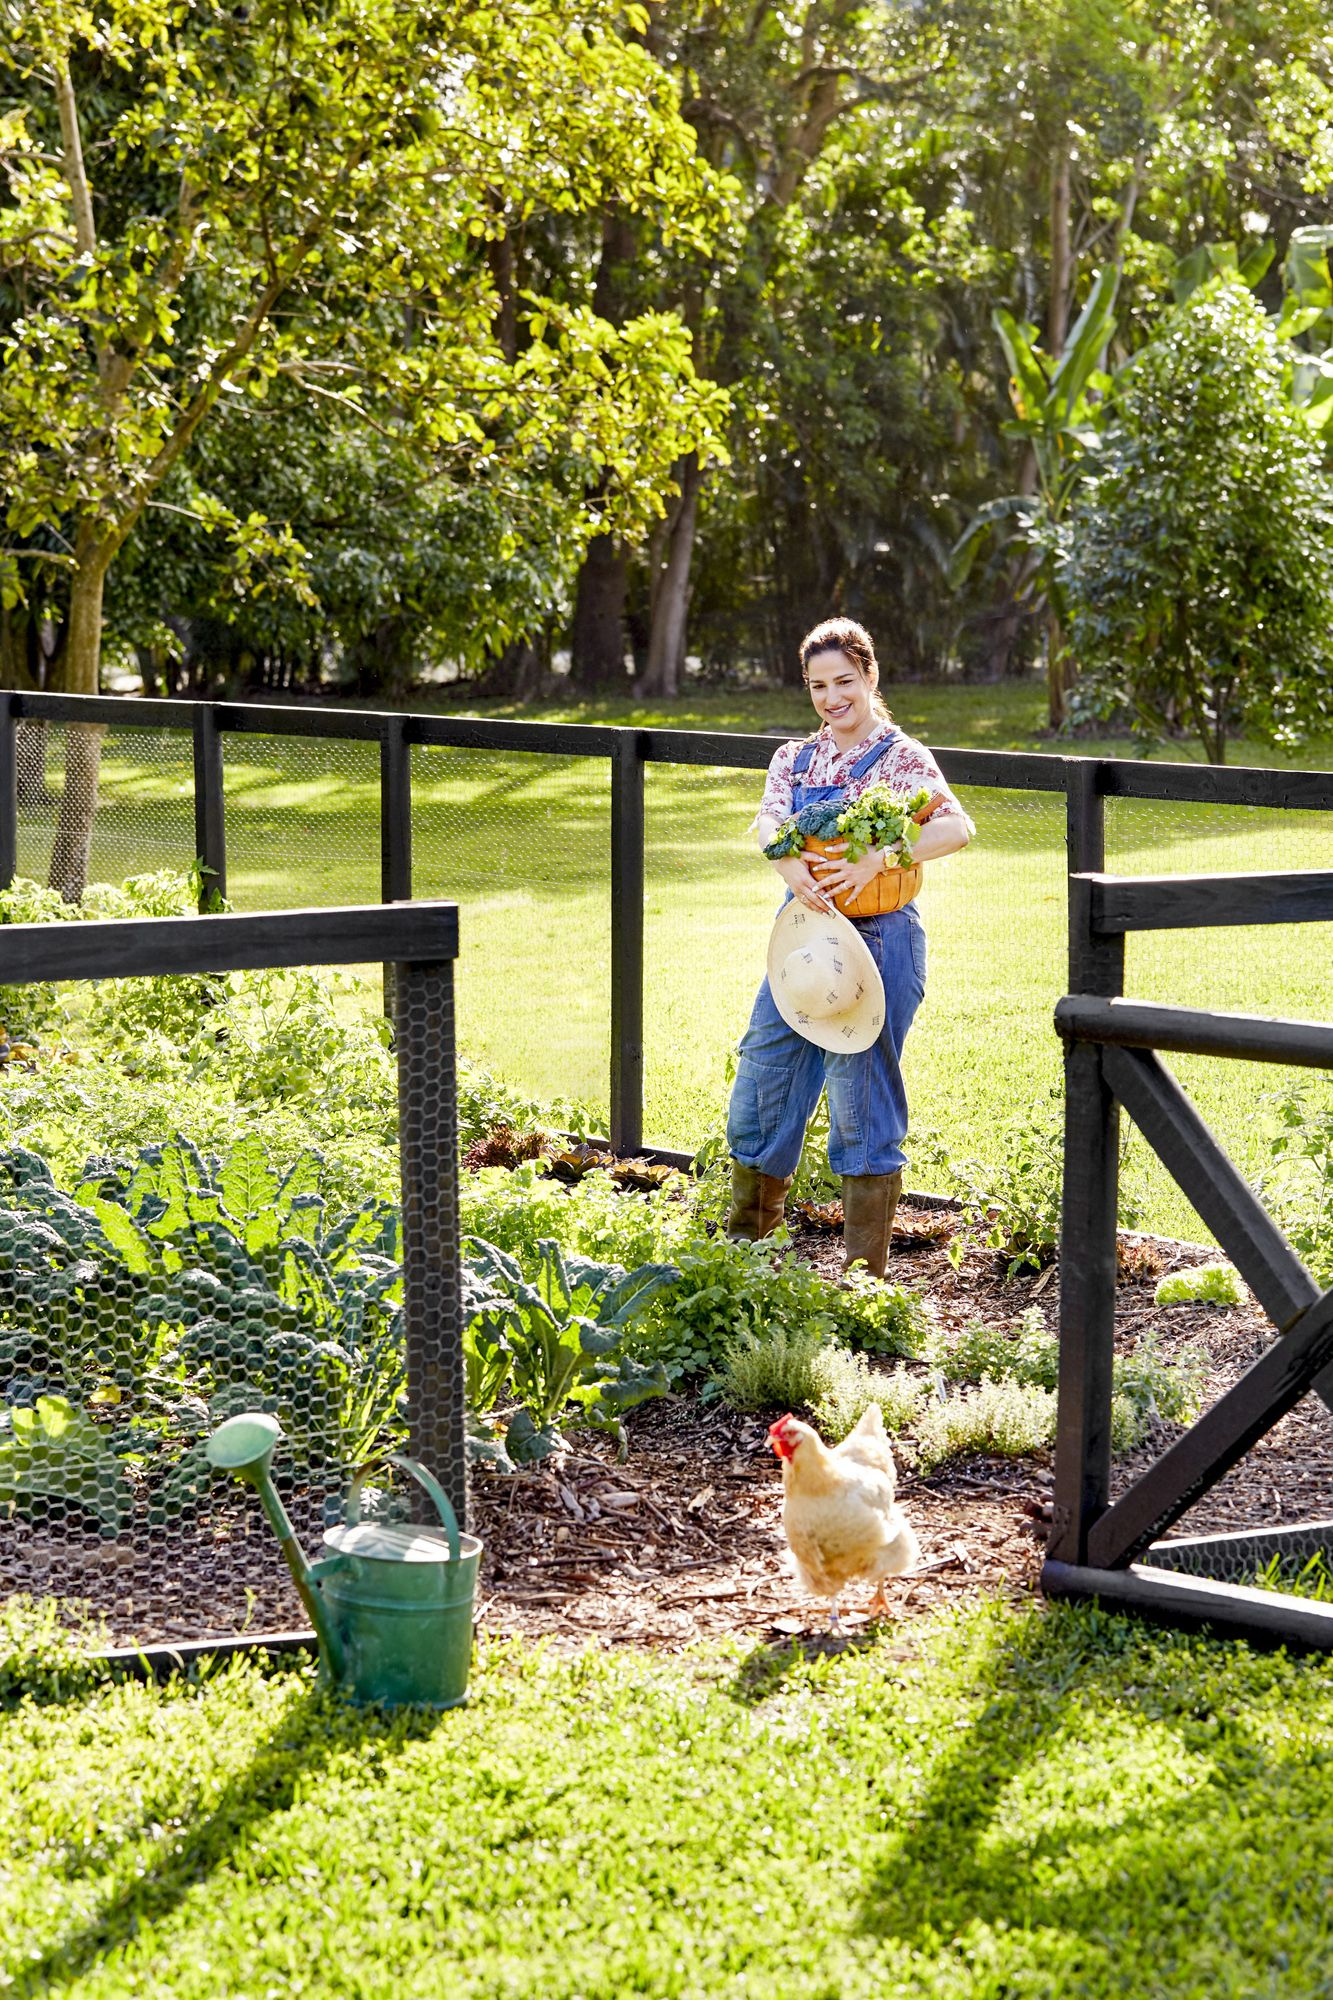 12 Practical and Pretty Garden Fence Ideas - Best Materials to